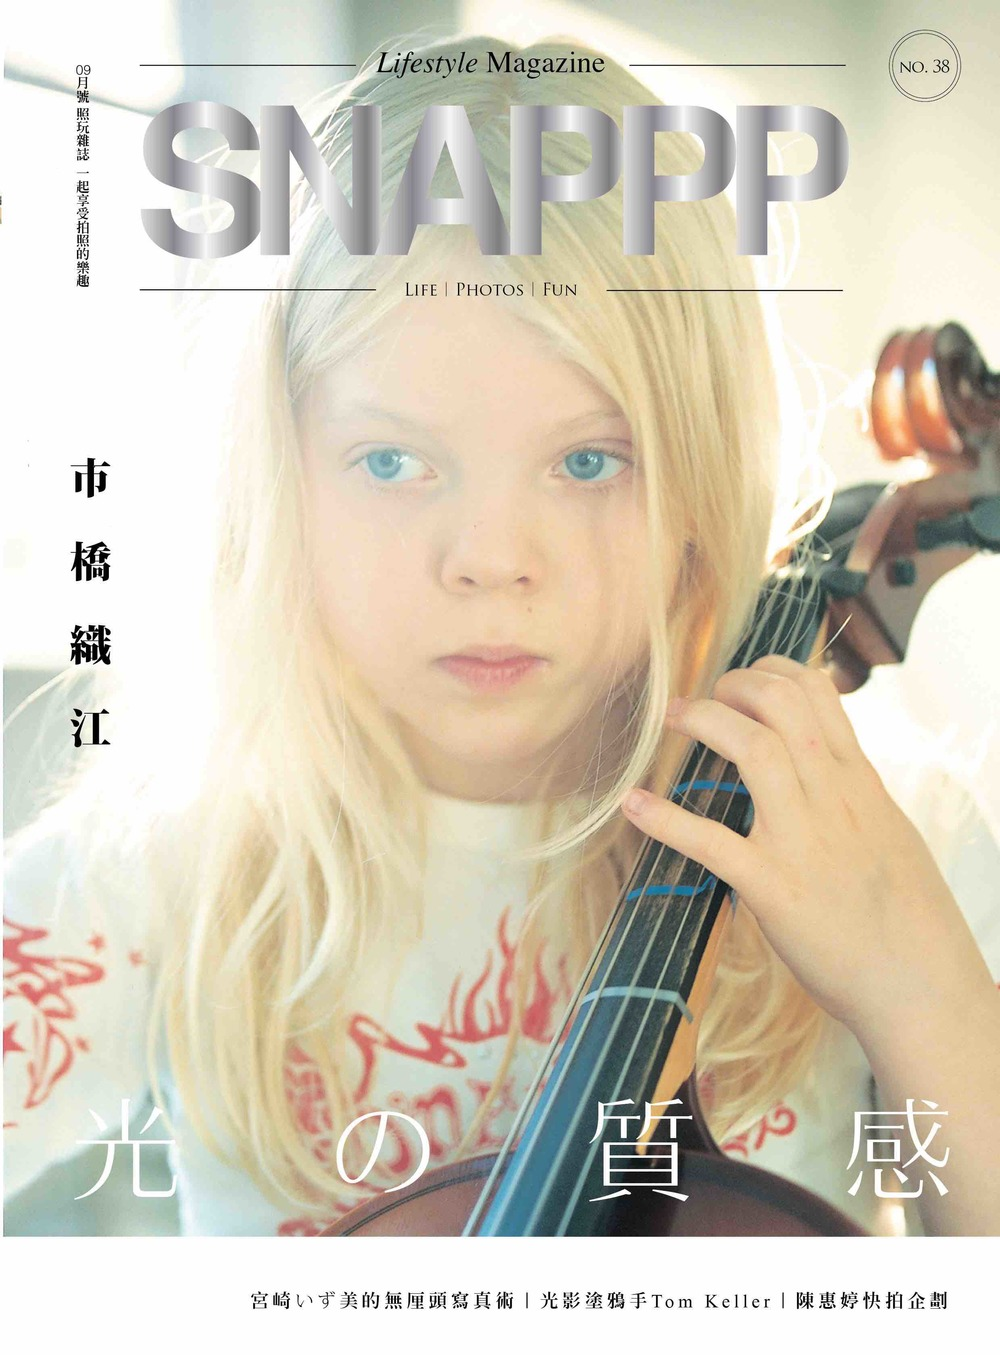 SNAPPP-NO38 COVER-ver4.jpg